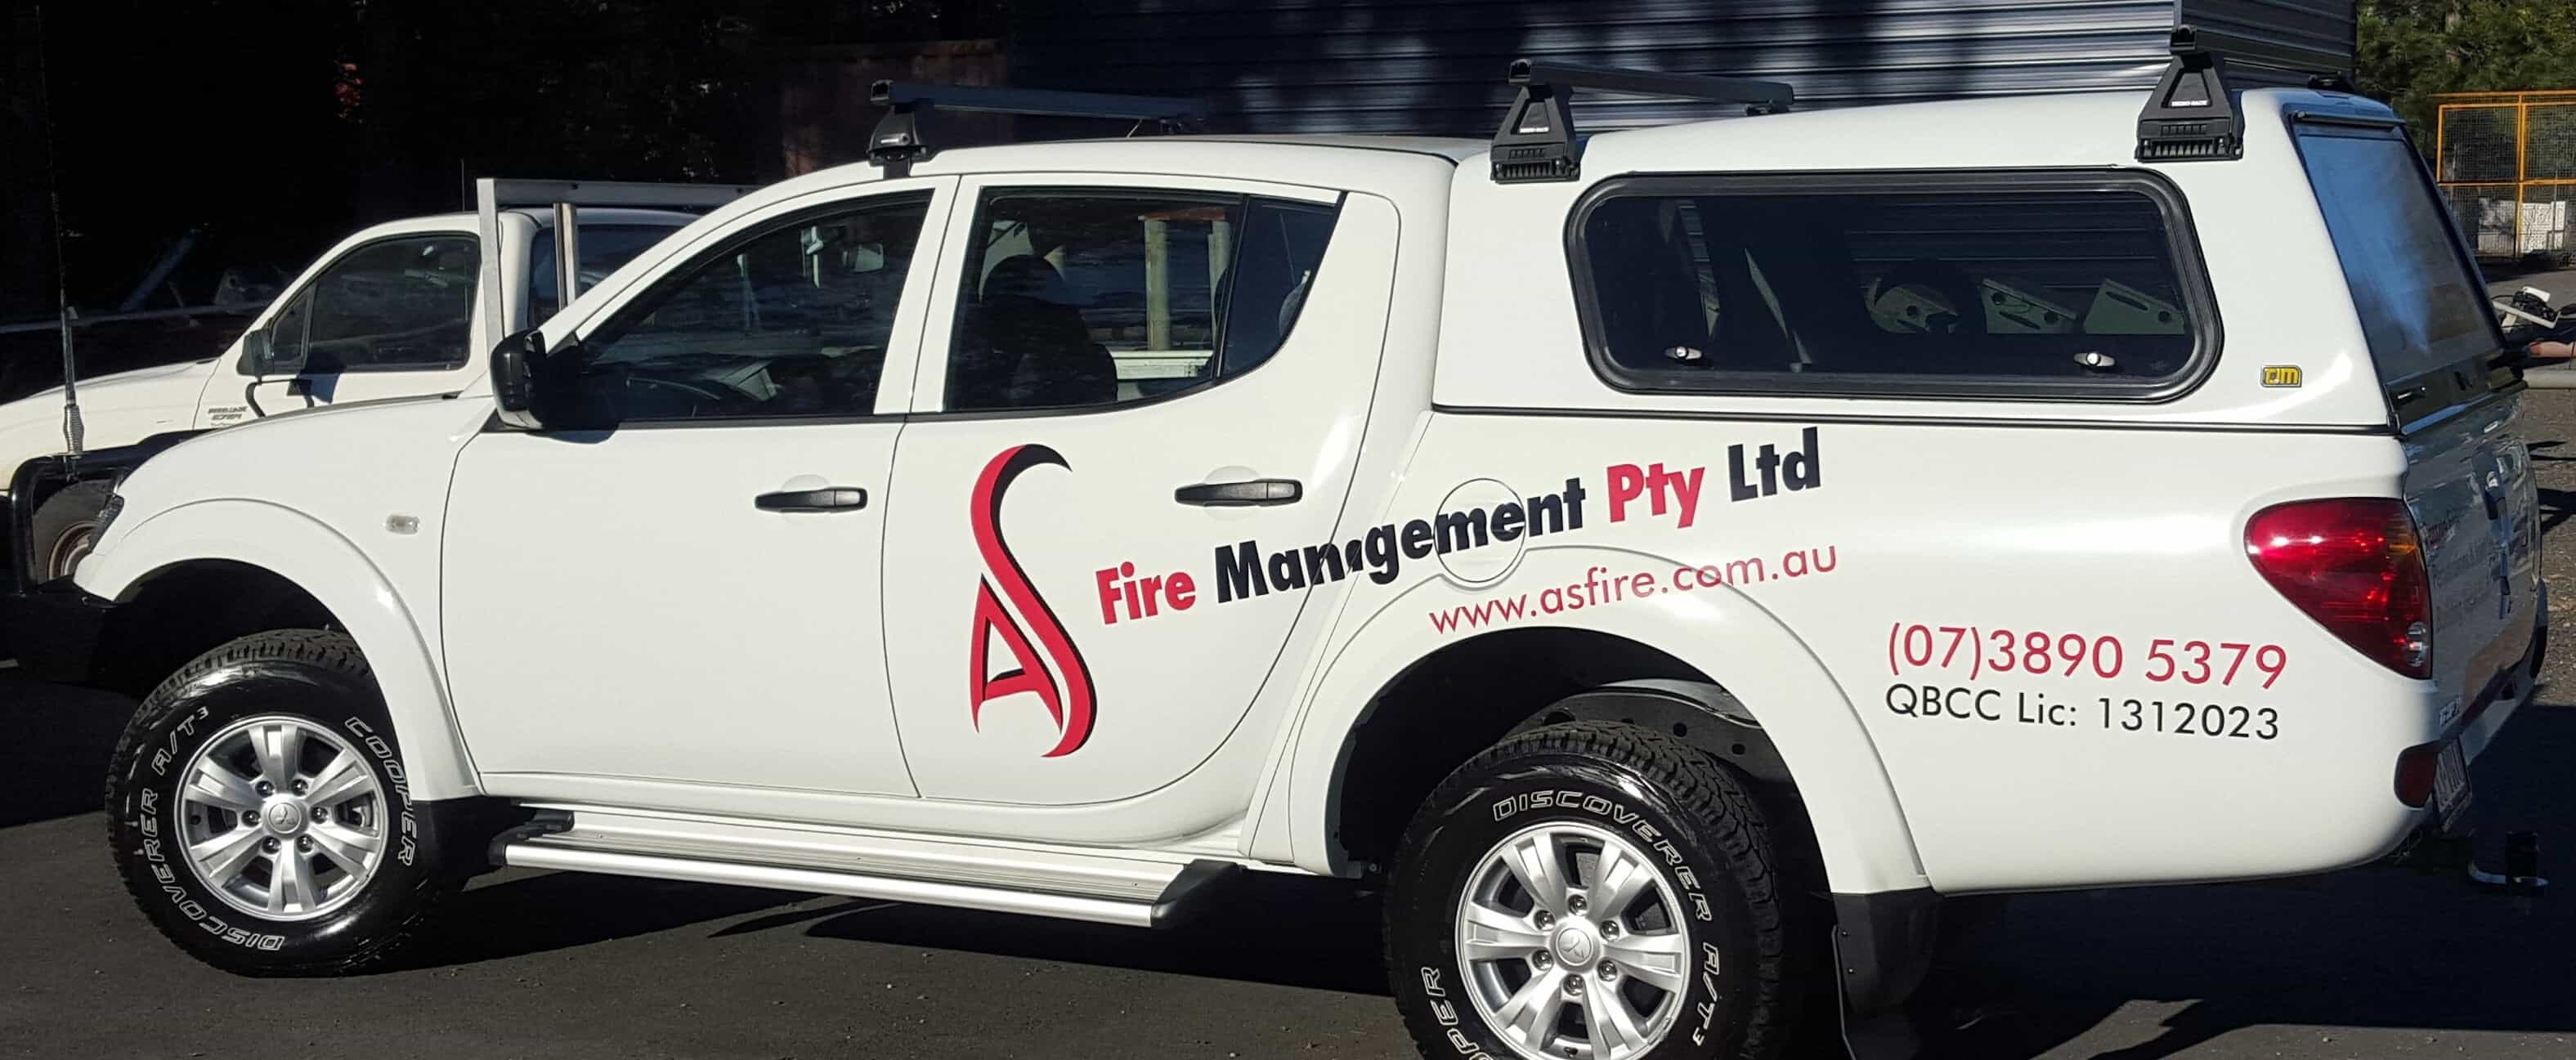 Fire Protection Services Ipswich